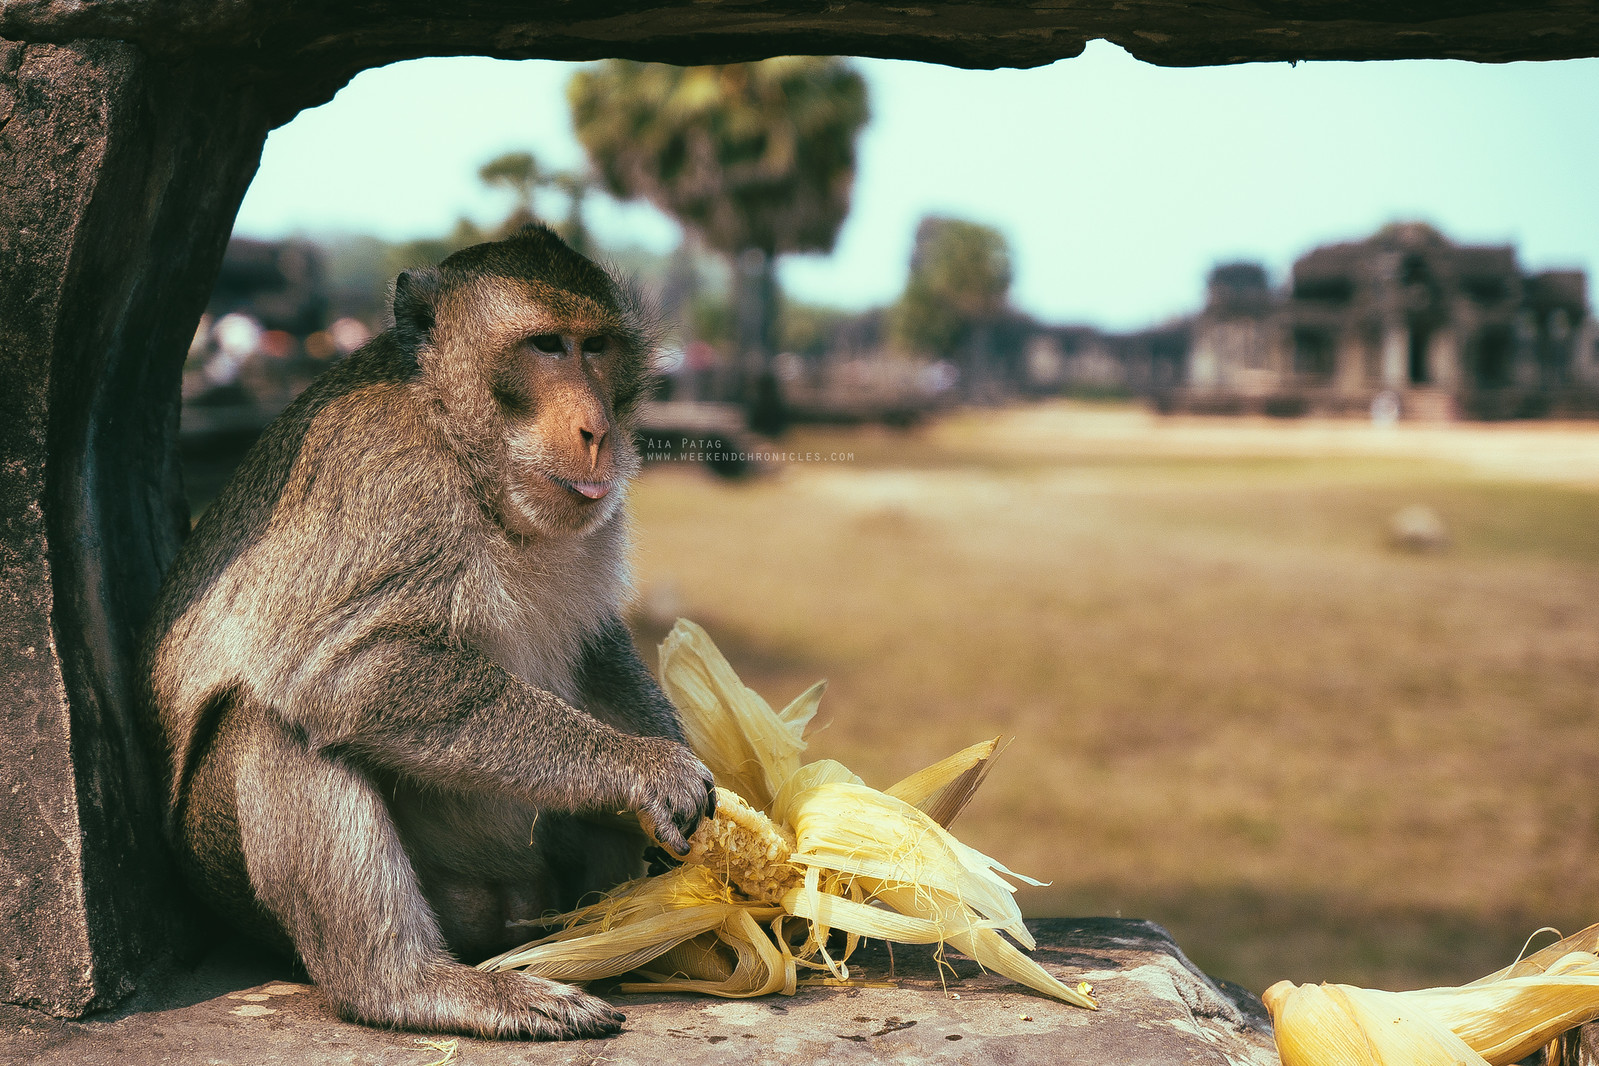 A male macaque enjoying his corn